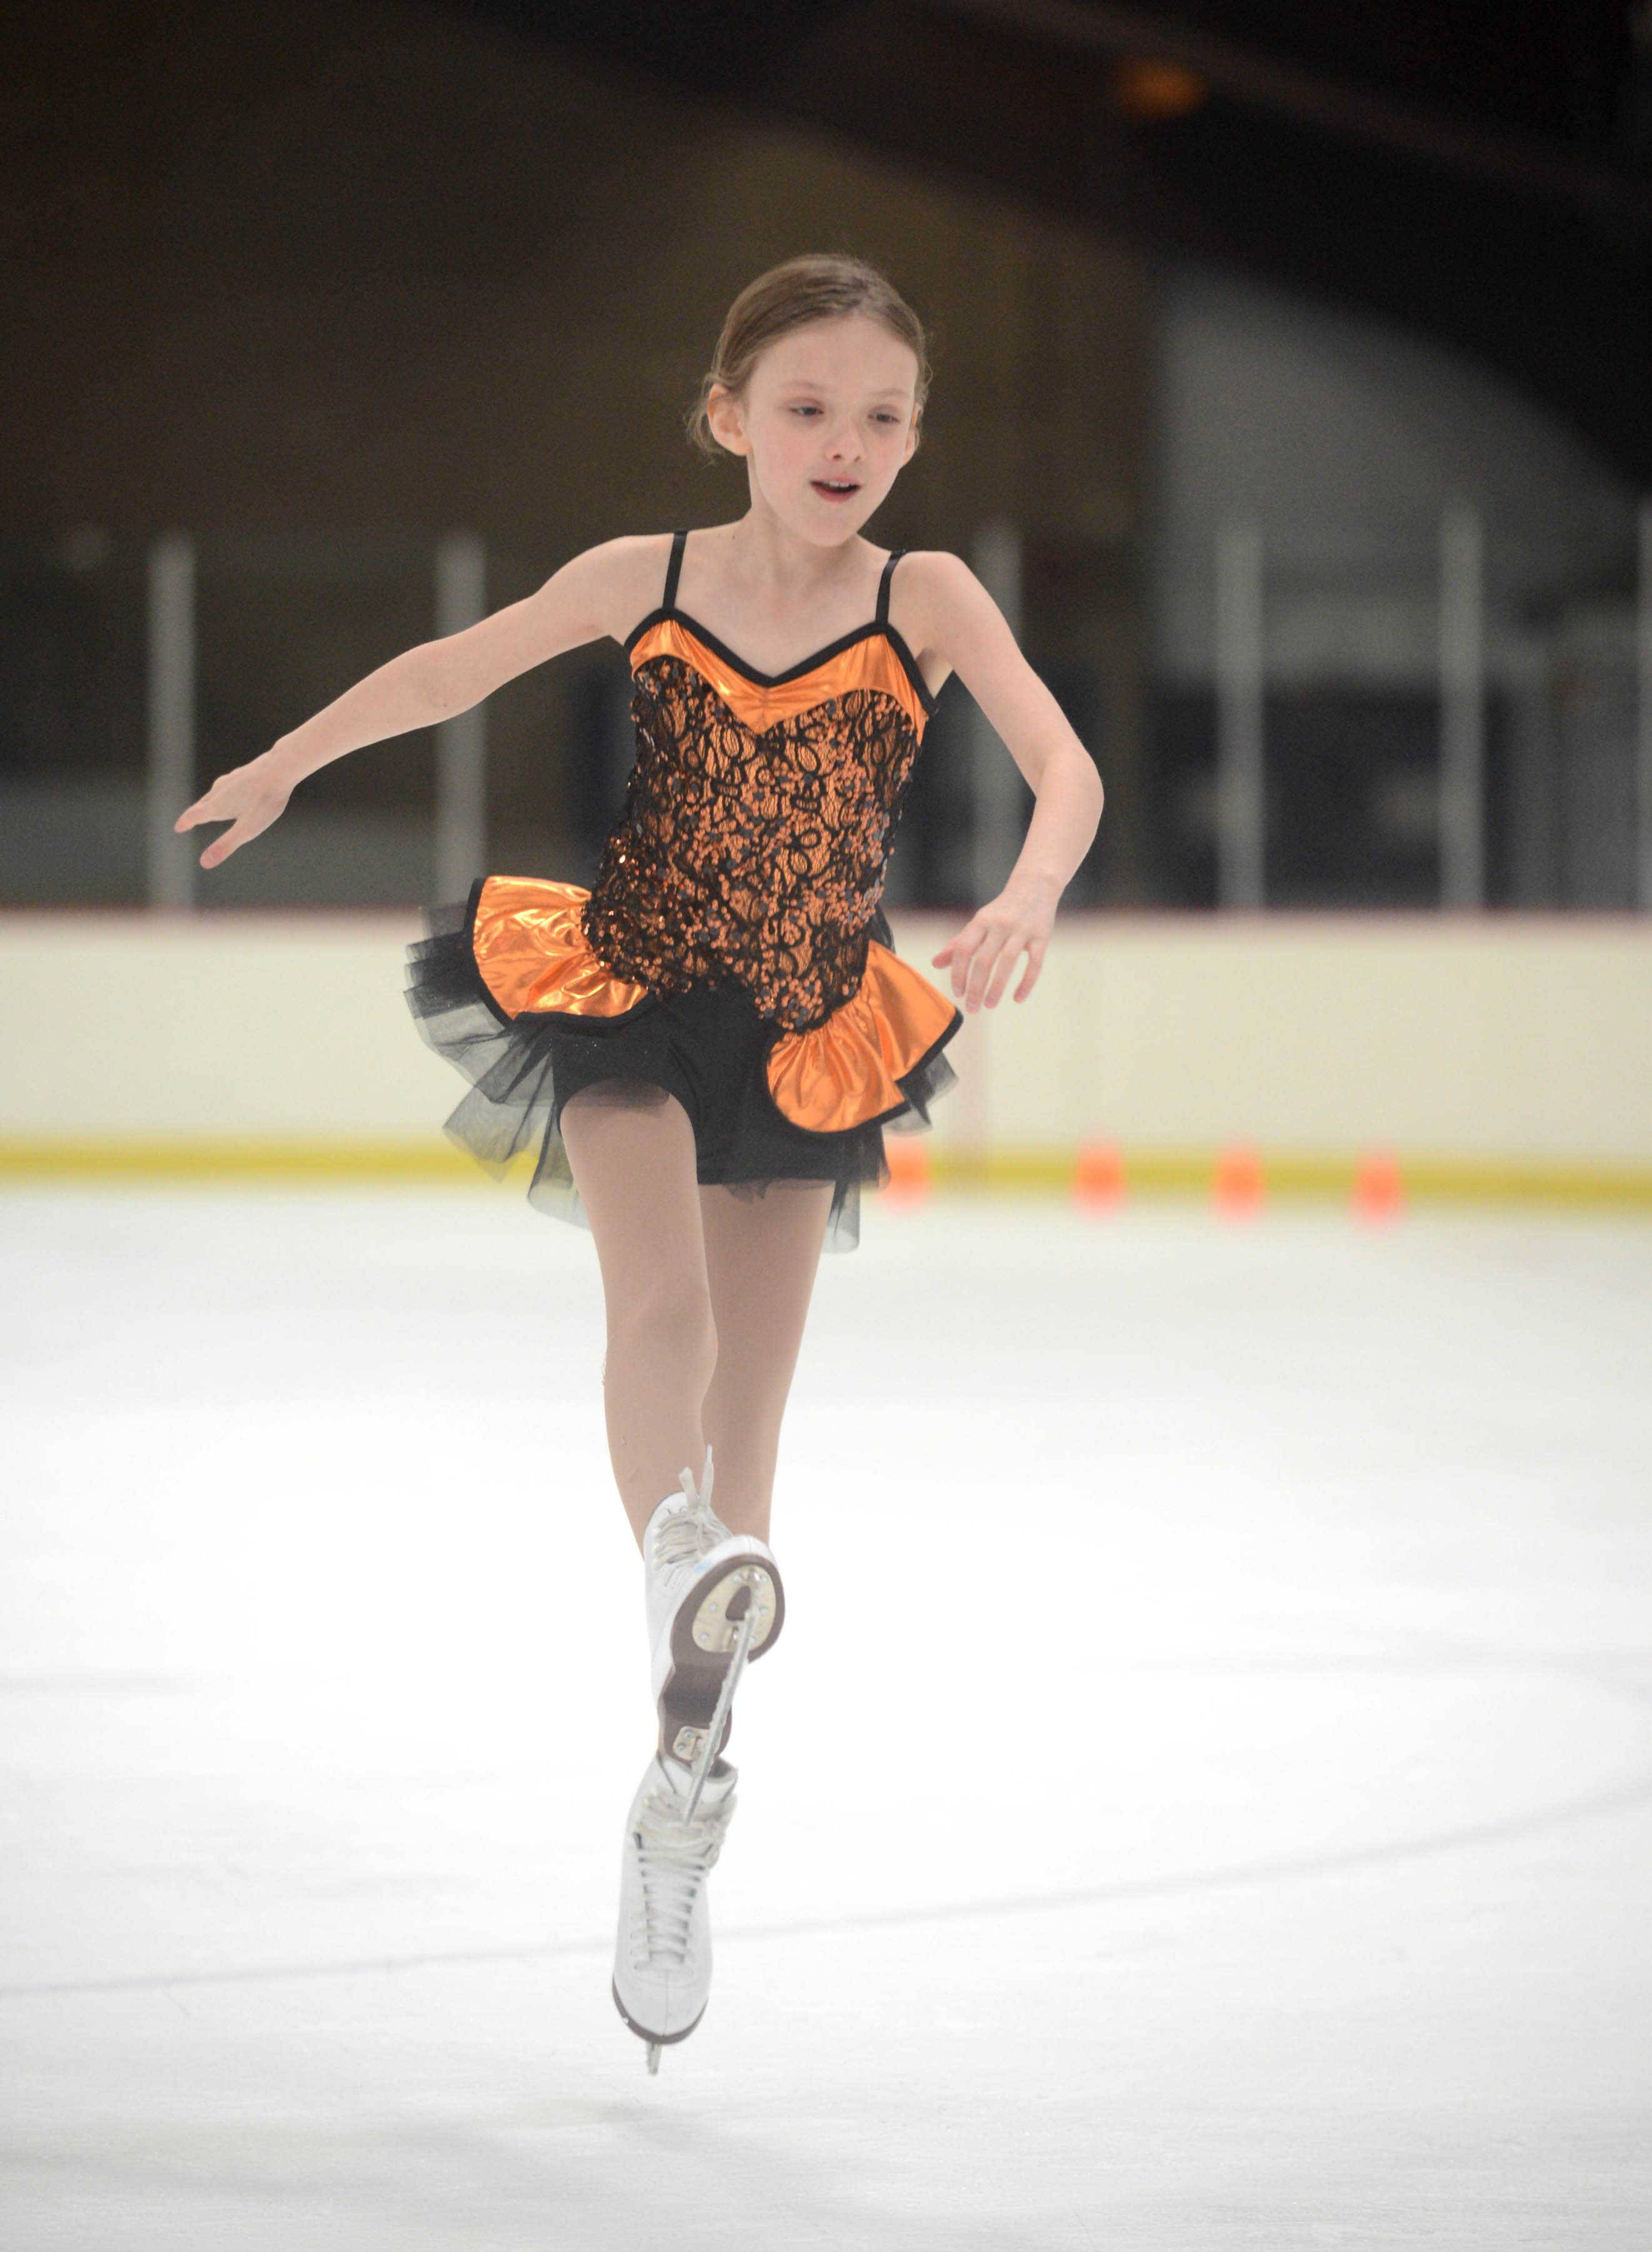 Trinity Kueppers, 8, of Park Ridge participates with Gamma-level classmates during rehearsal at the Oakton Ice Arena for the upcoming Park Ridge Park District Ice Show.